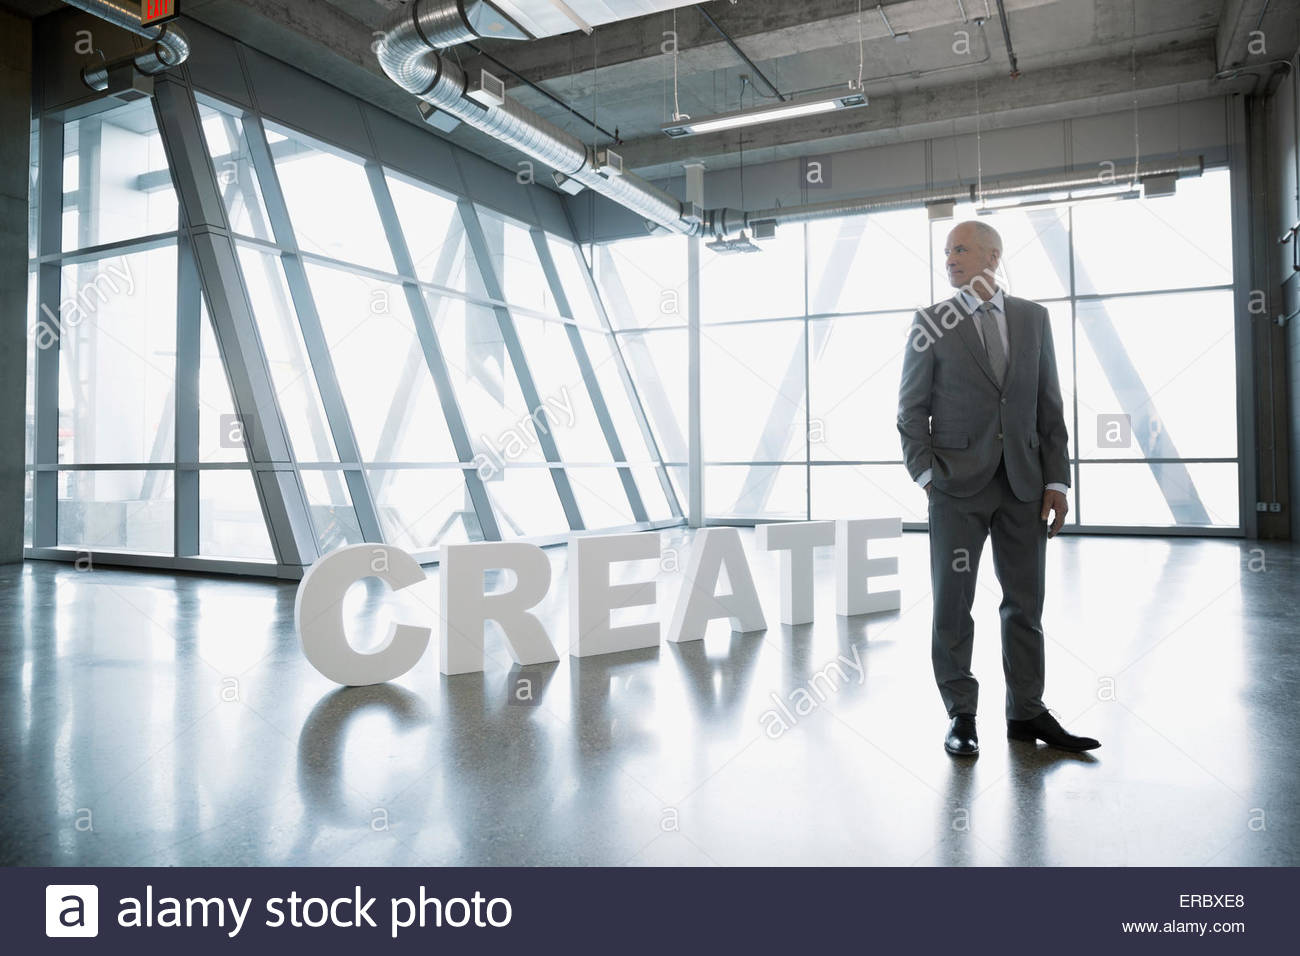 Businessman near 'Create' letters looking away - Stock Image